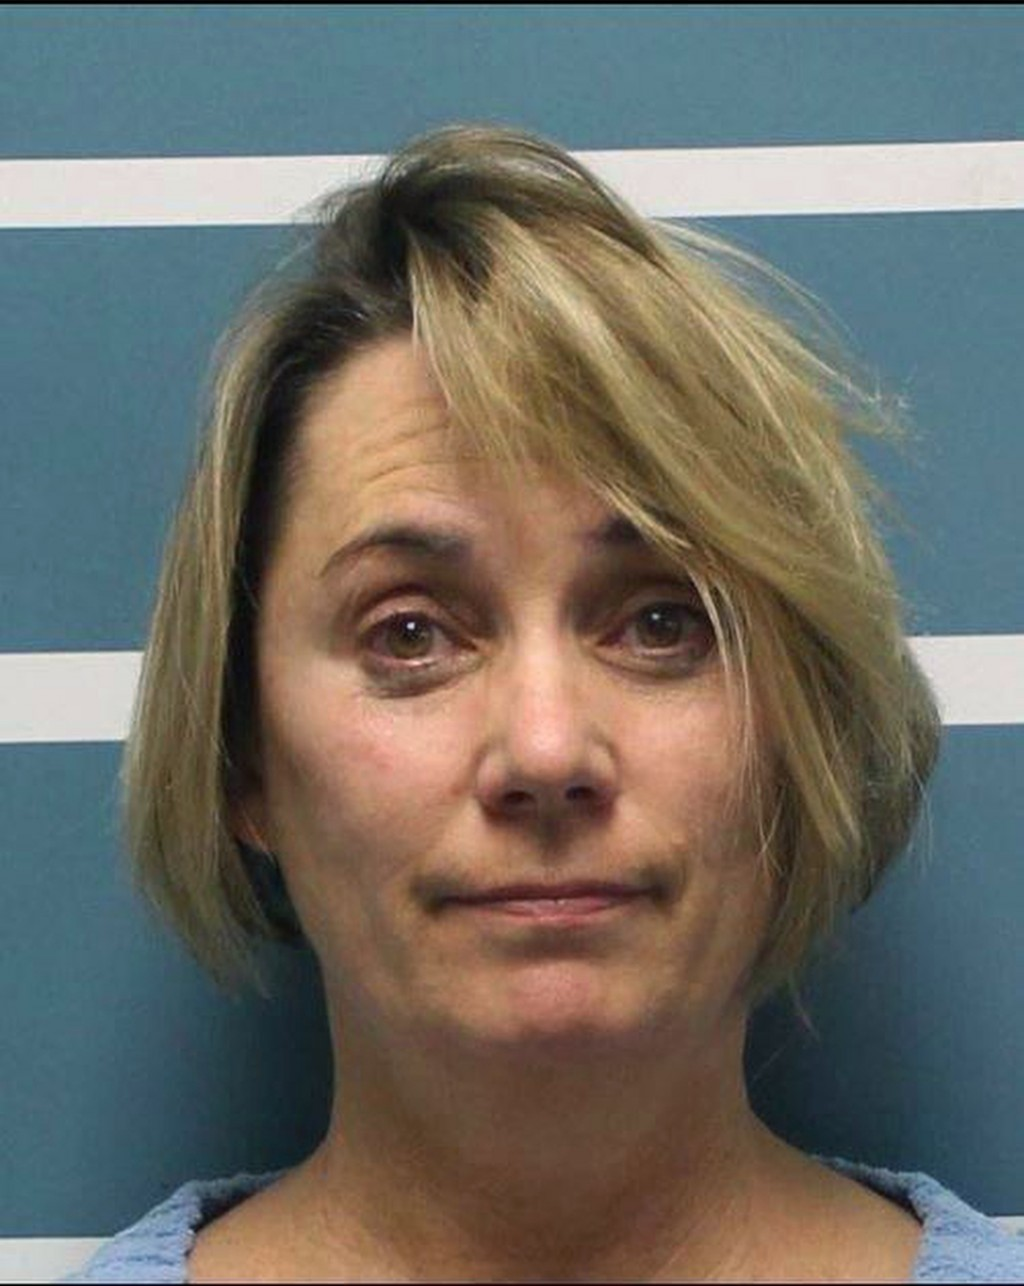 This Wednesday, Dec. 5, 2018, photo released by Tulare County Sheriff's Office shows Margaret Gieszinger, a high school teacher in central California